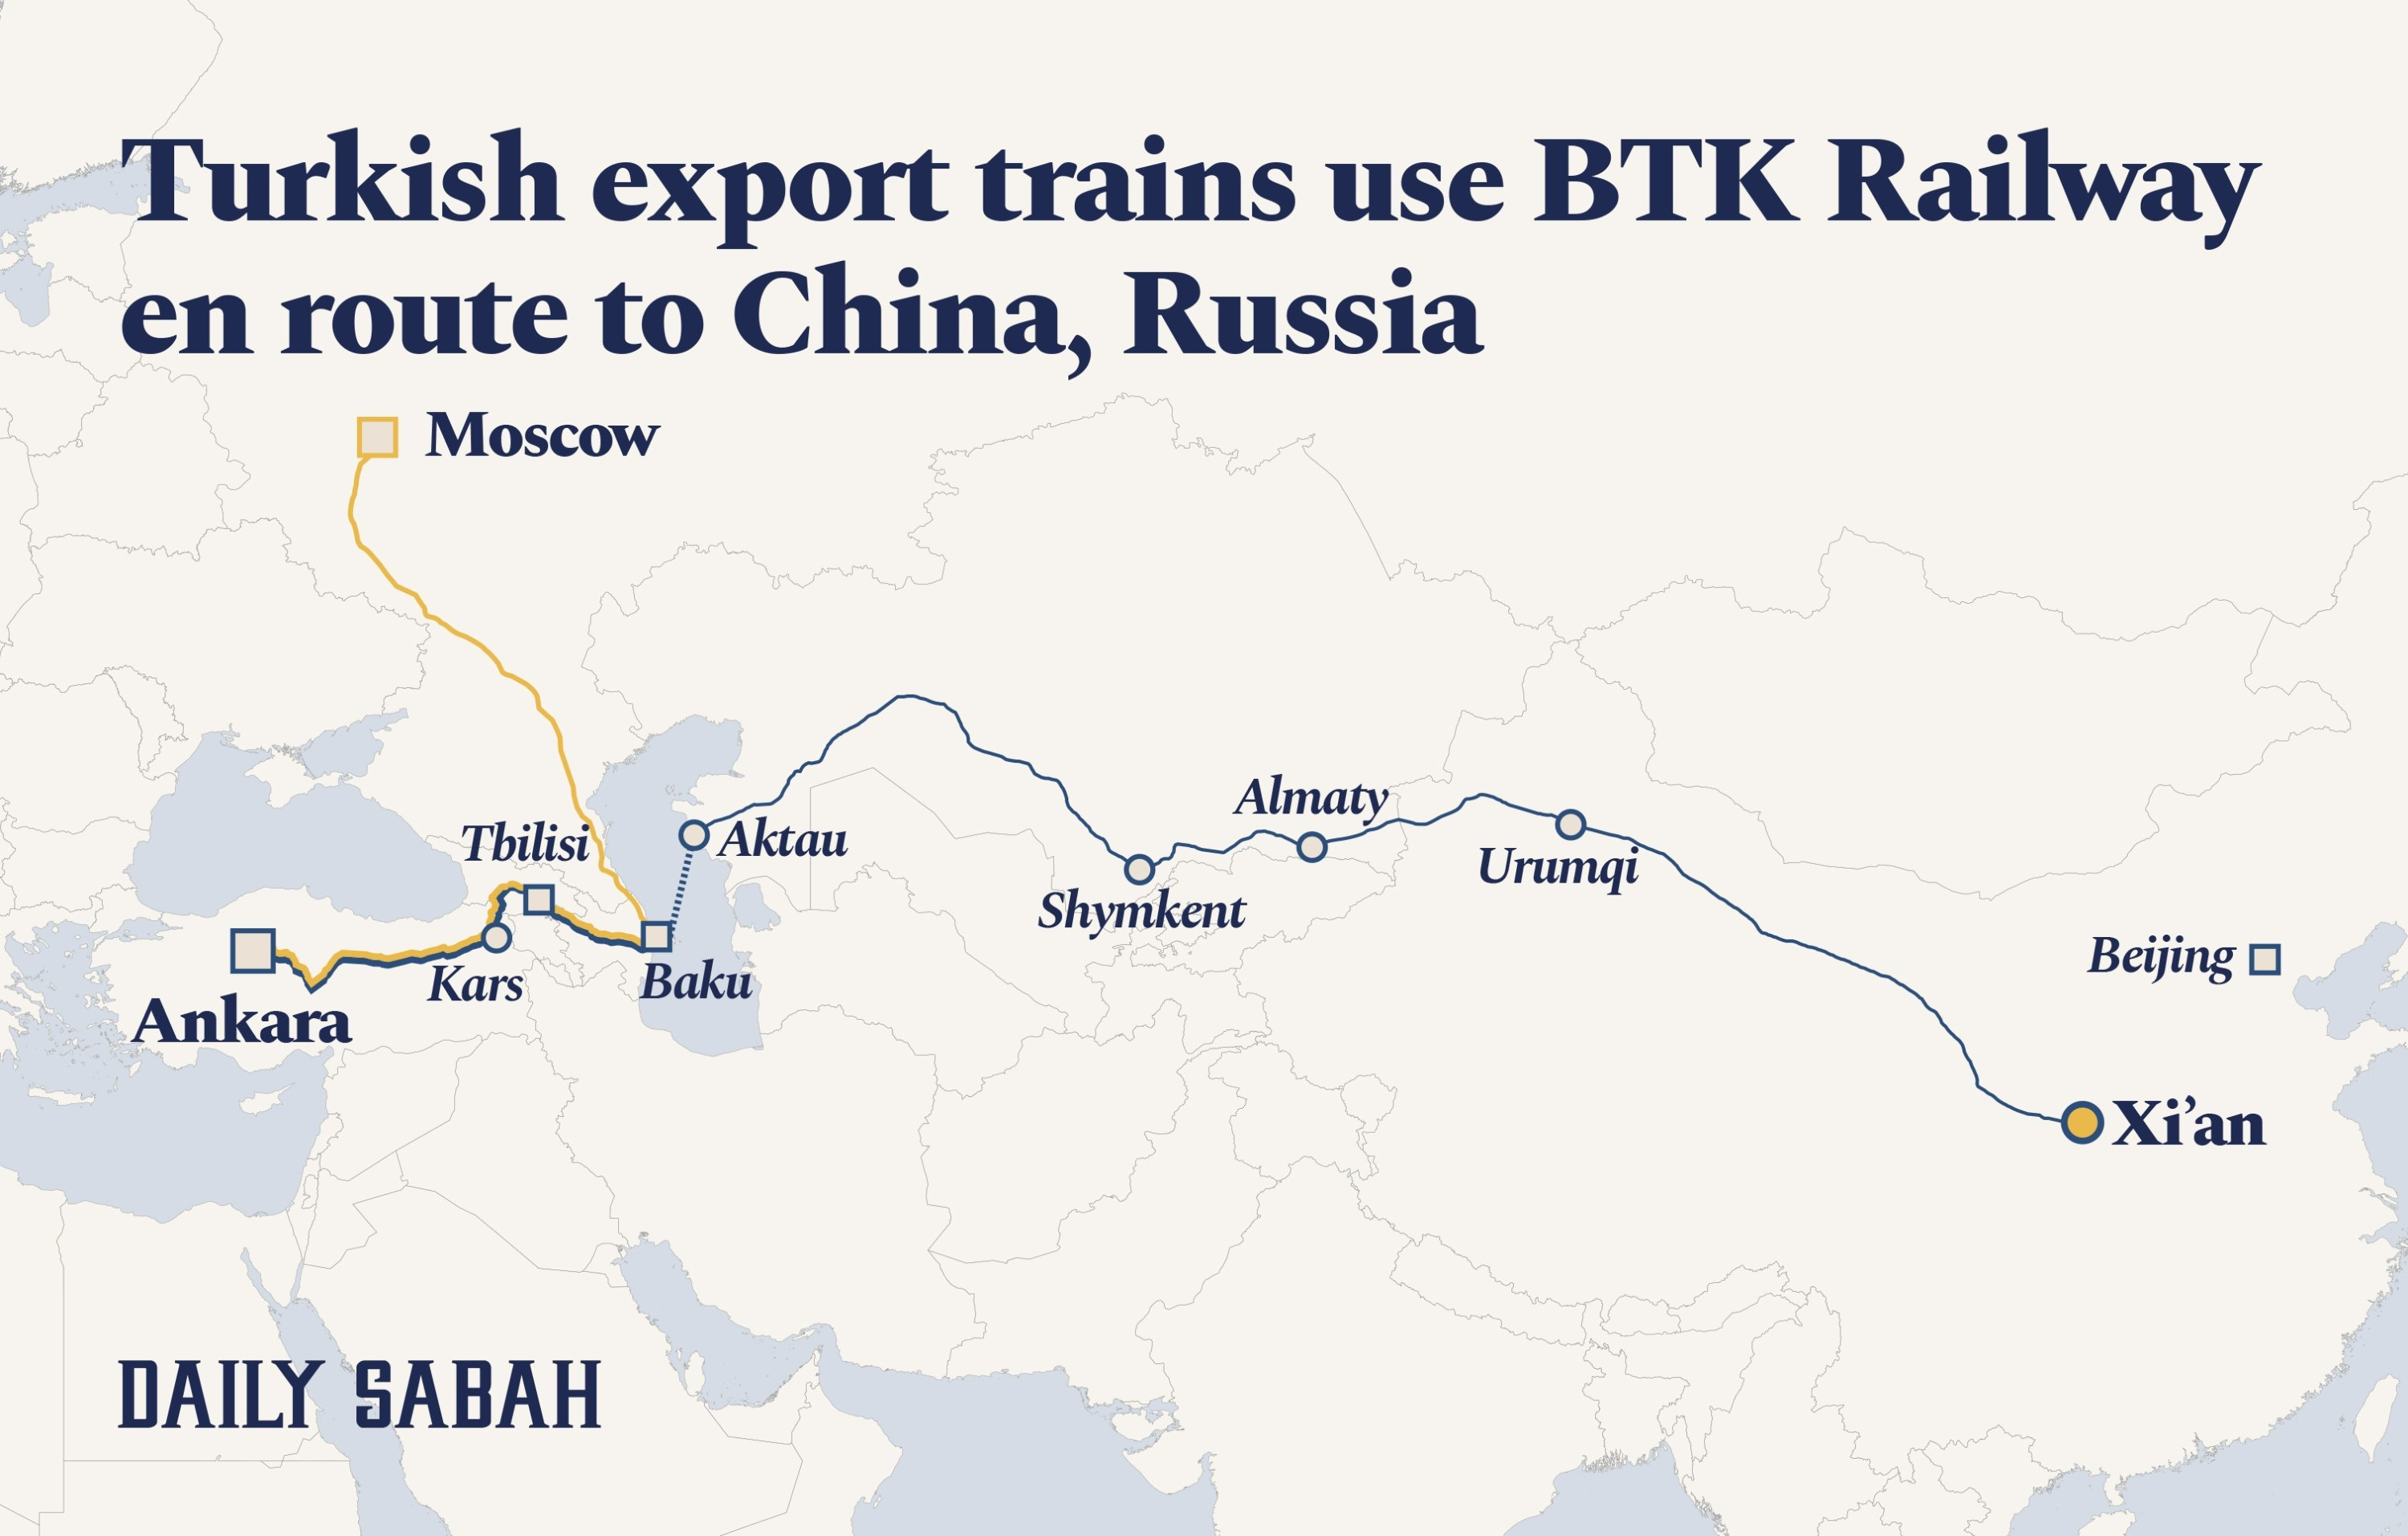 Infographic by Daily Sabah.